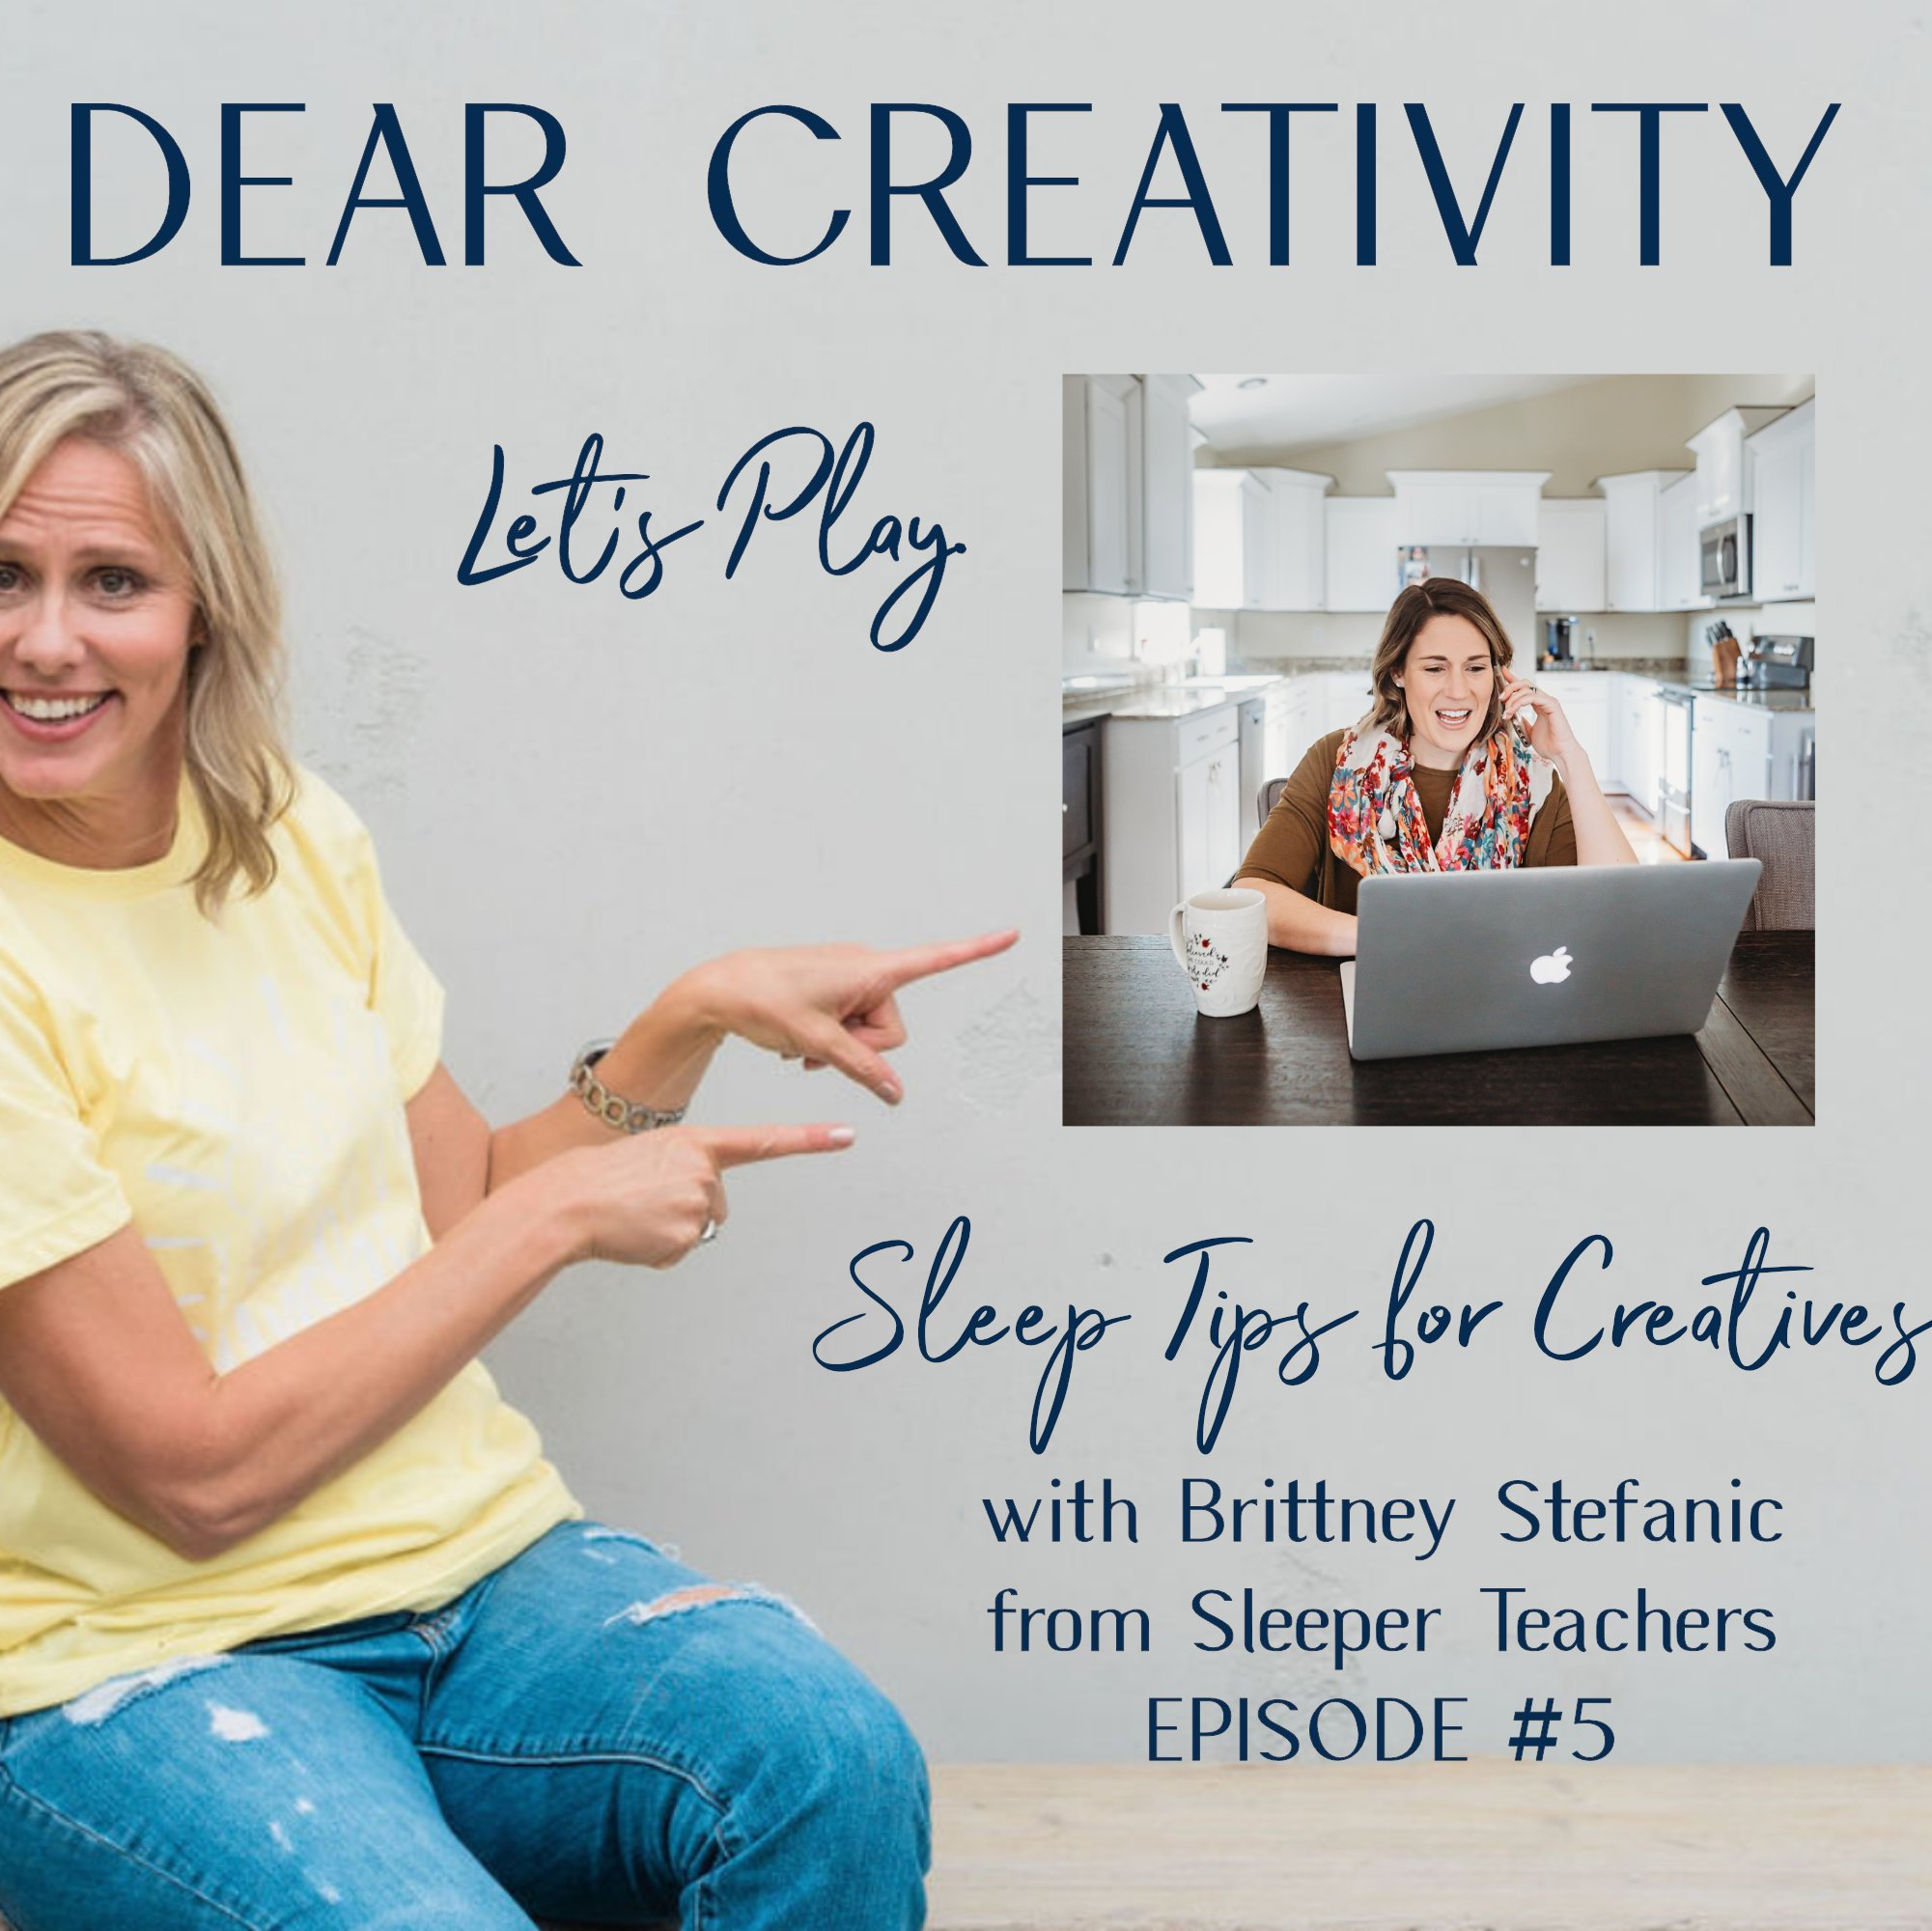 brittney stefanic sleep tips podcast graphic